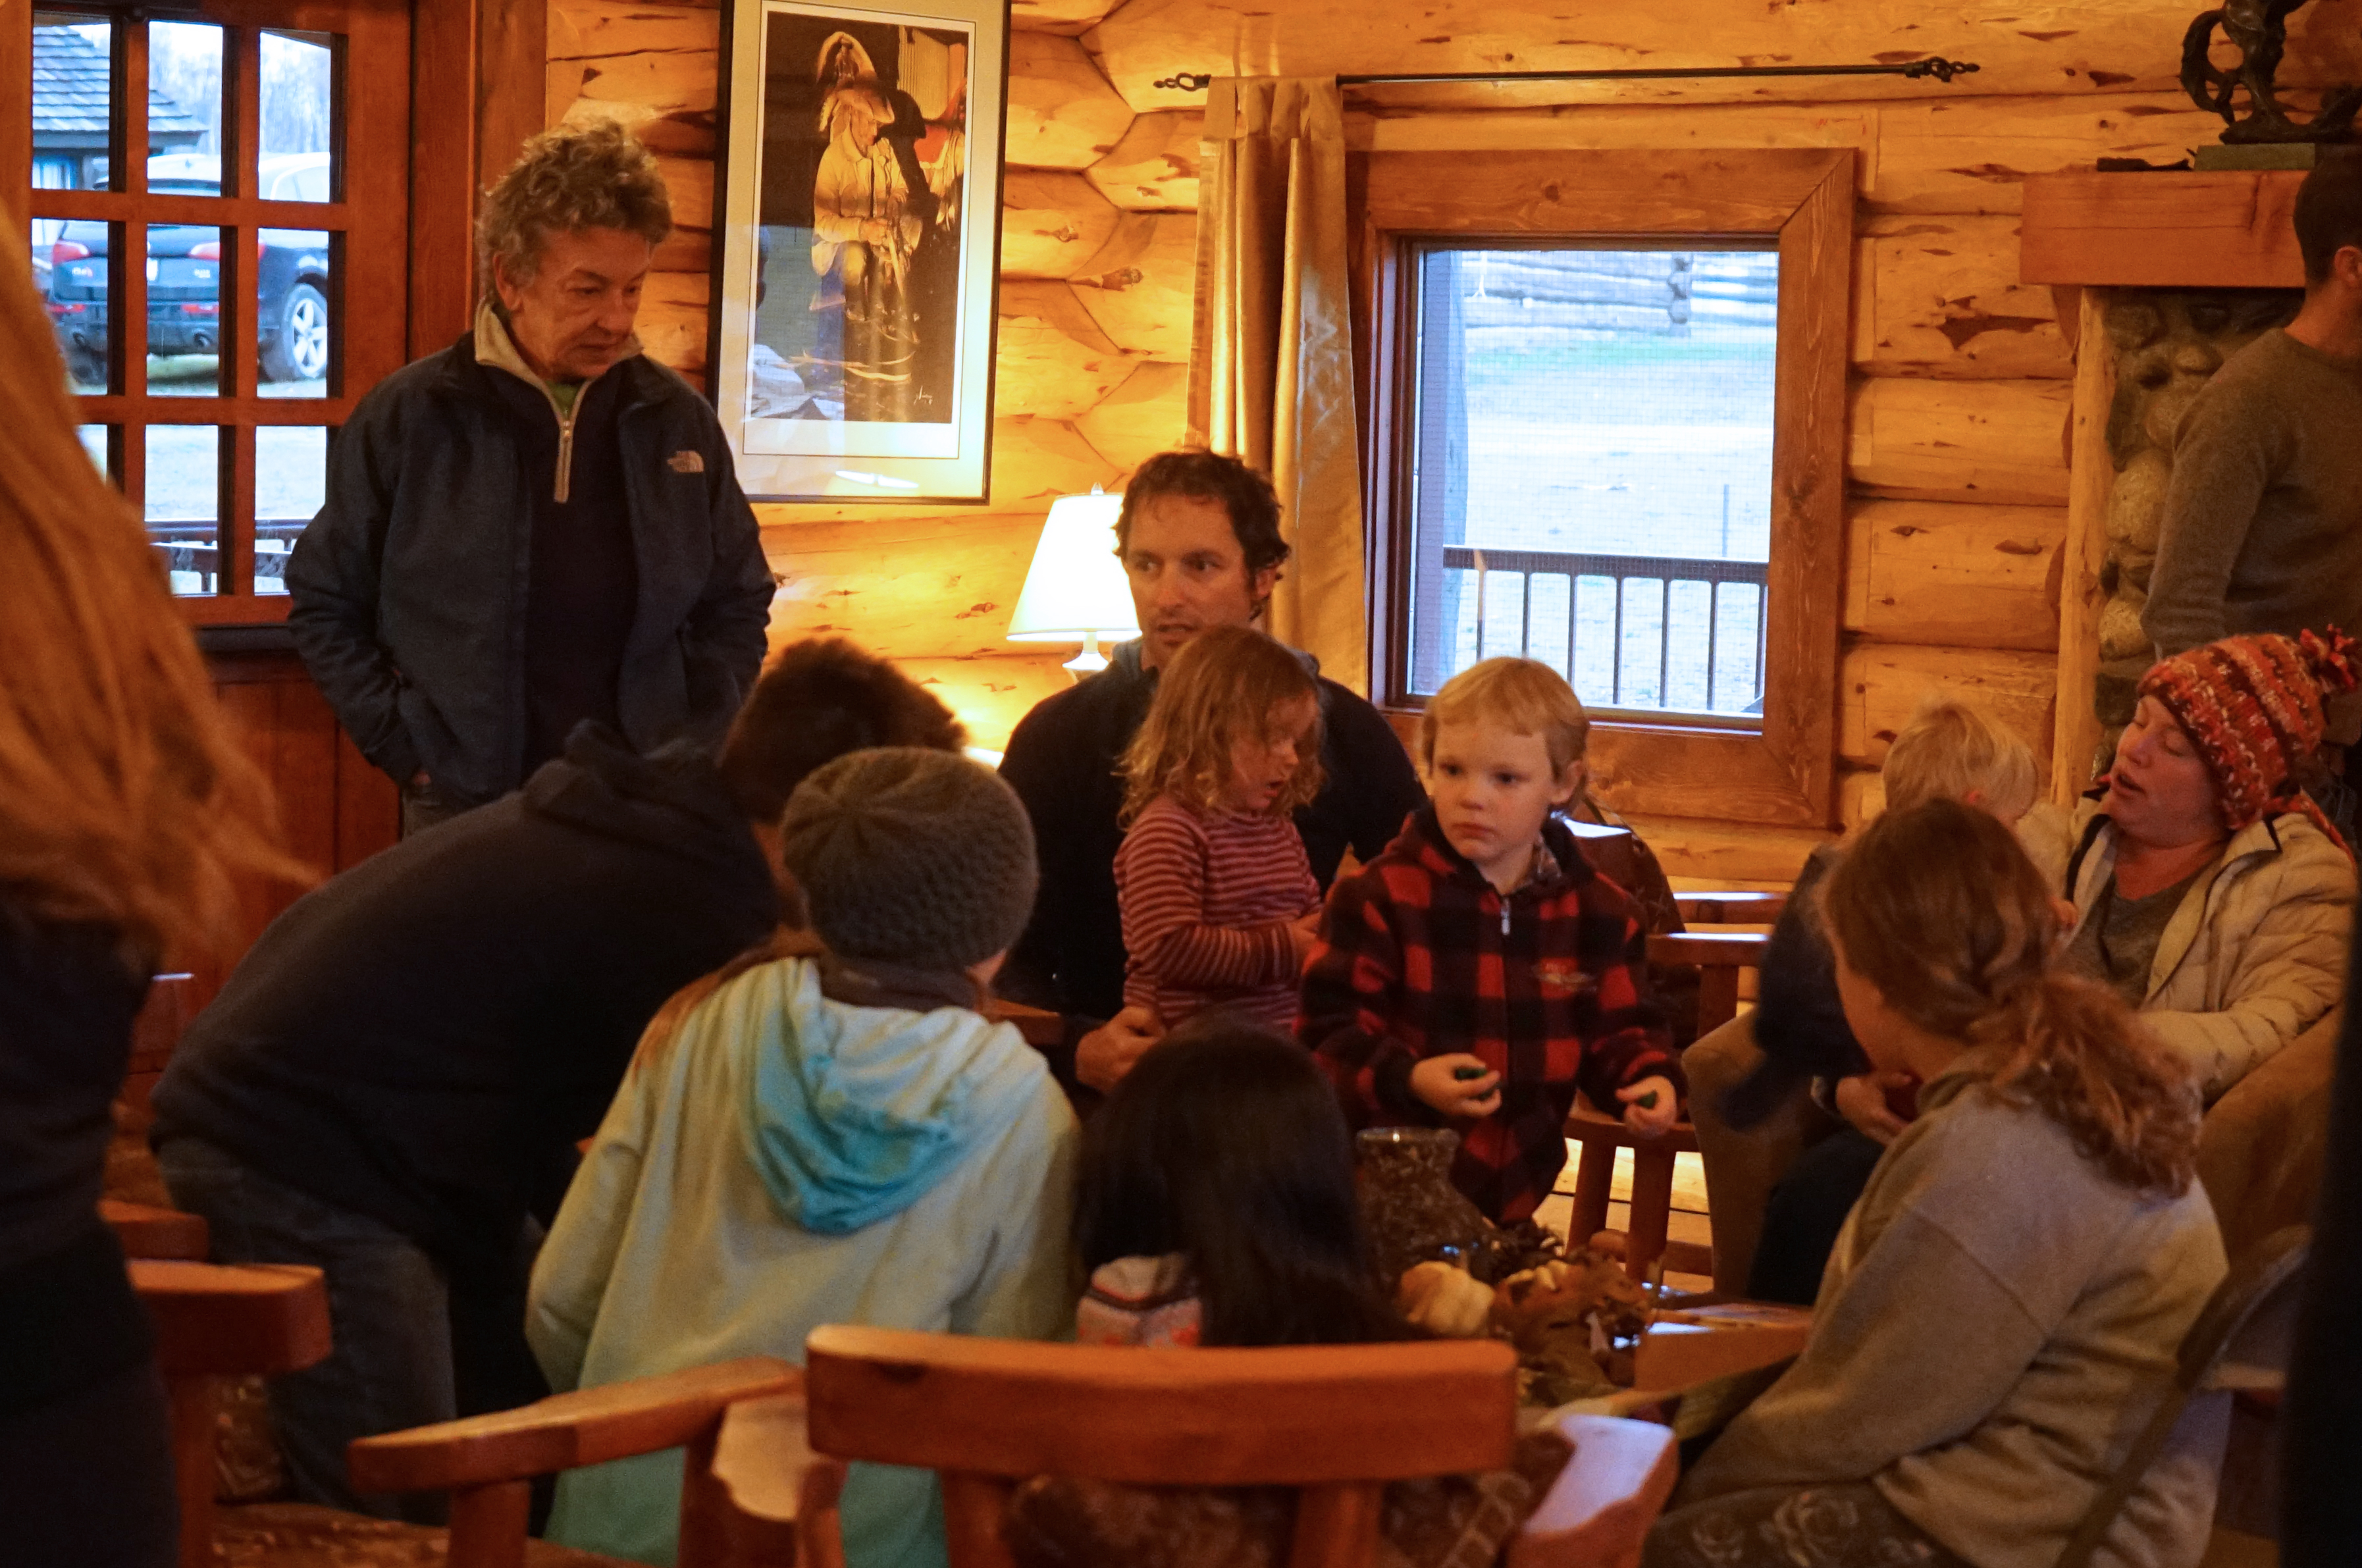 group in lodge